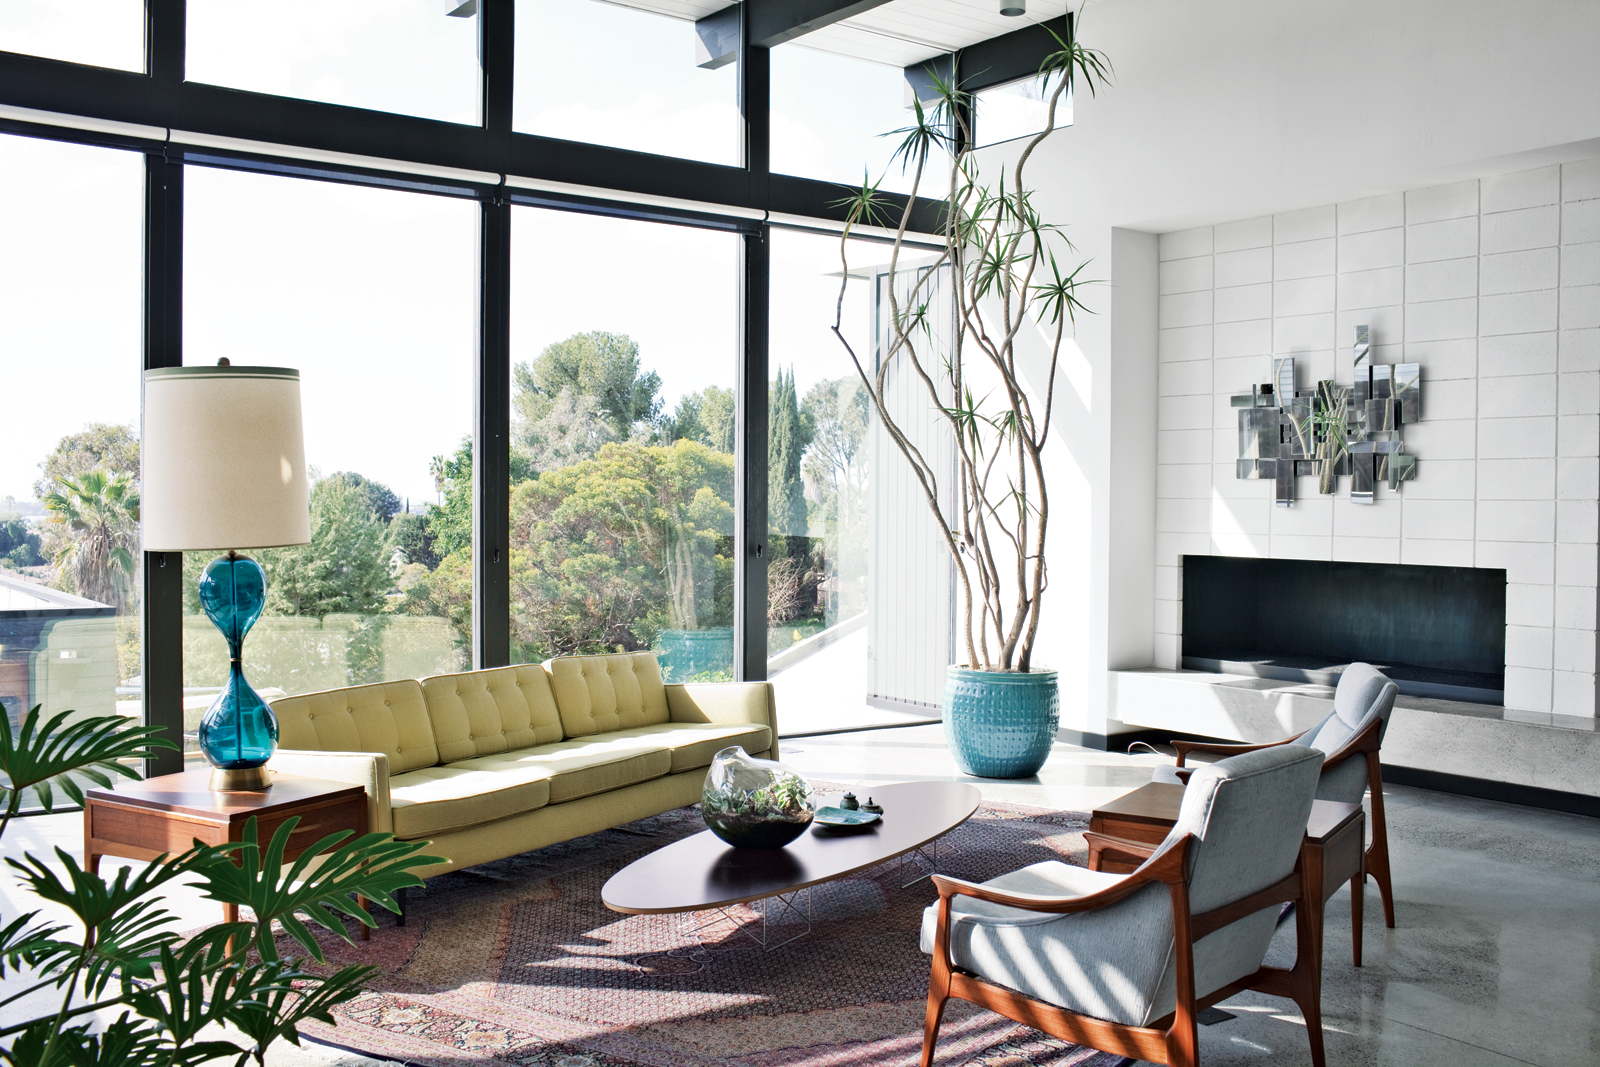 Yellow sofa, gray chairs, low coffee table, floor-to-ceiling windows